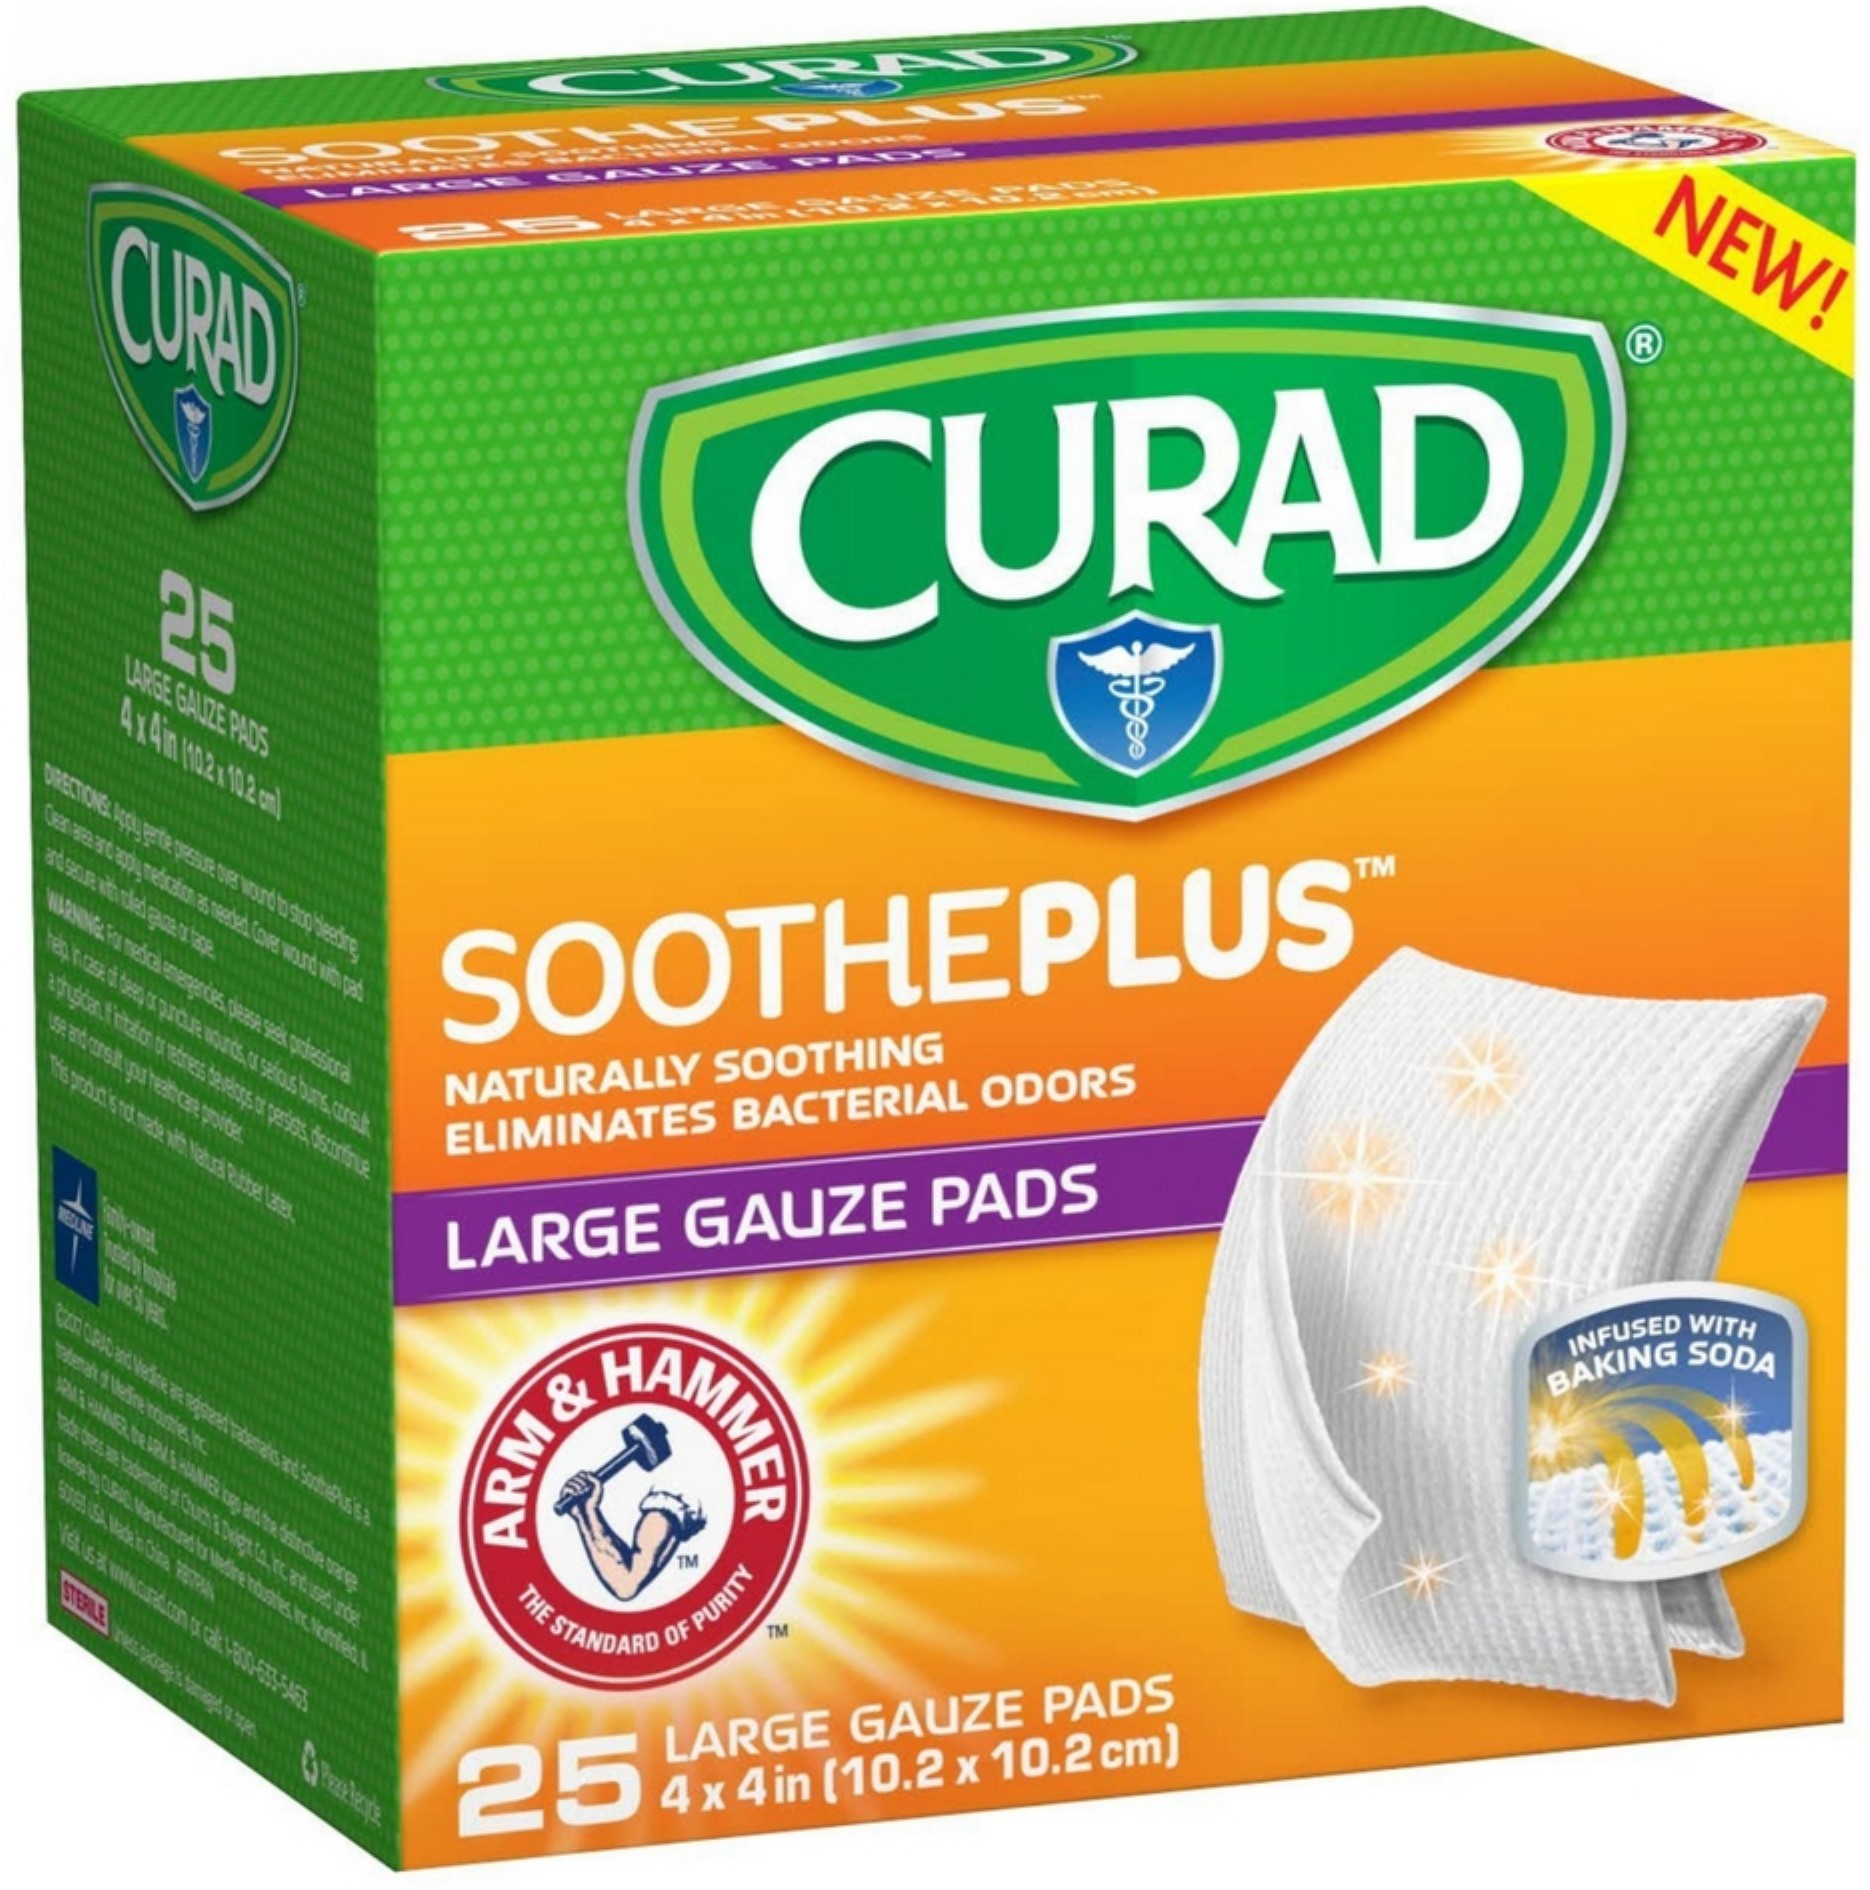 Curad Soothe Plus Large Gauze Pads with Arm and Hammer 25 ea